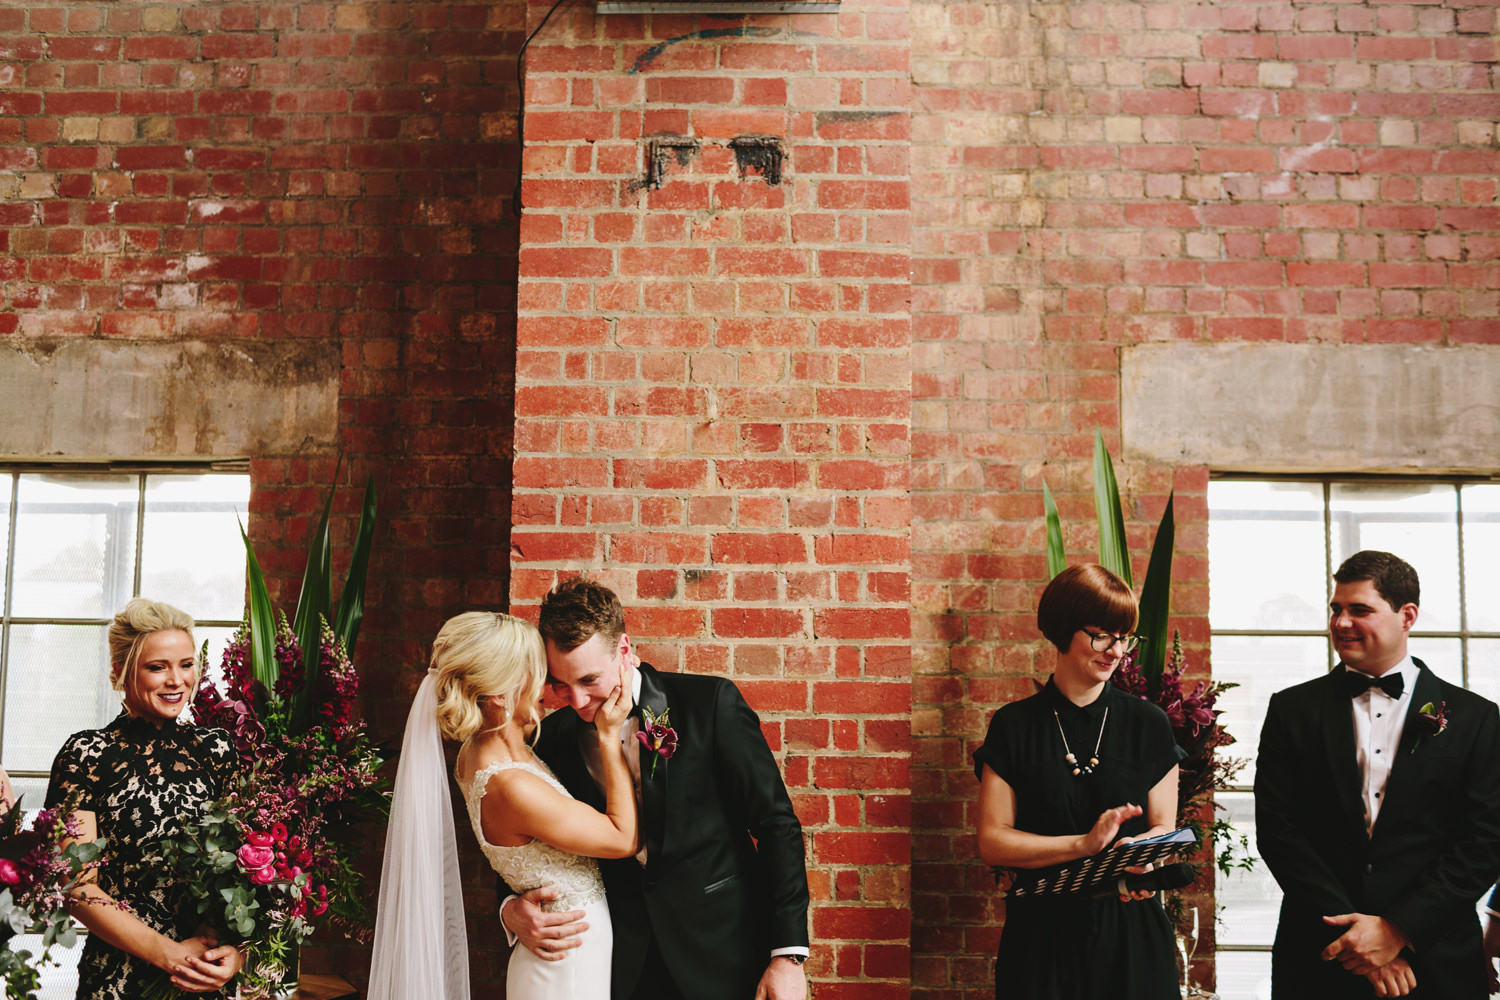 066-Melbourne_Wedding_Photographer_Jonathan_Ong_Best2015.jpg